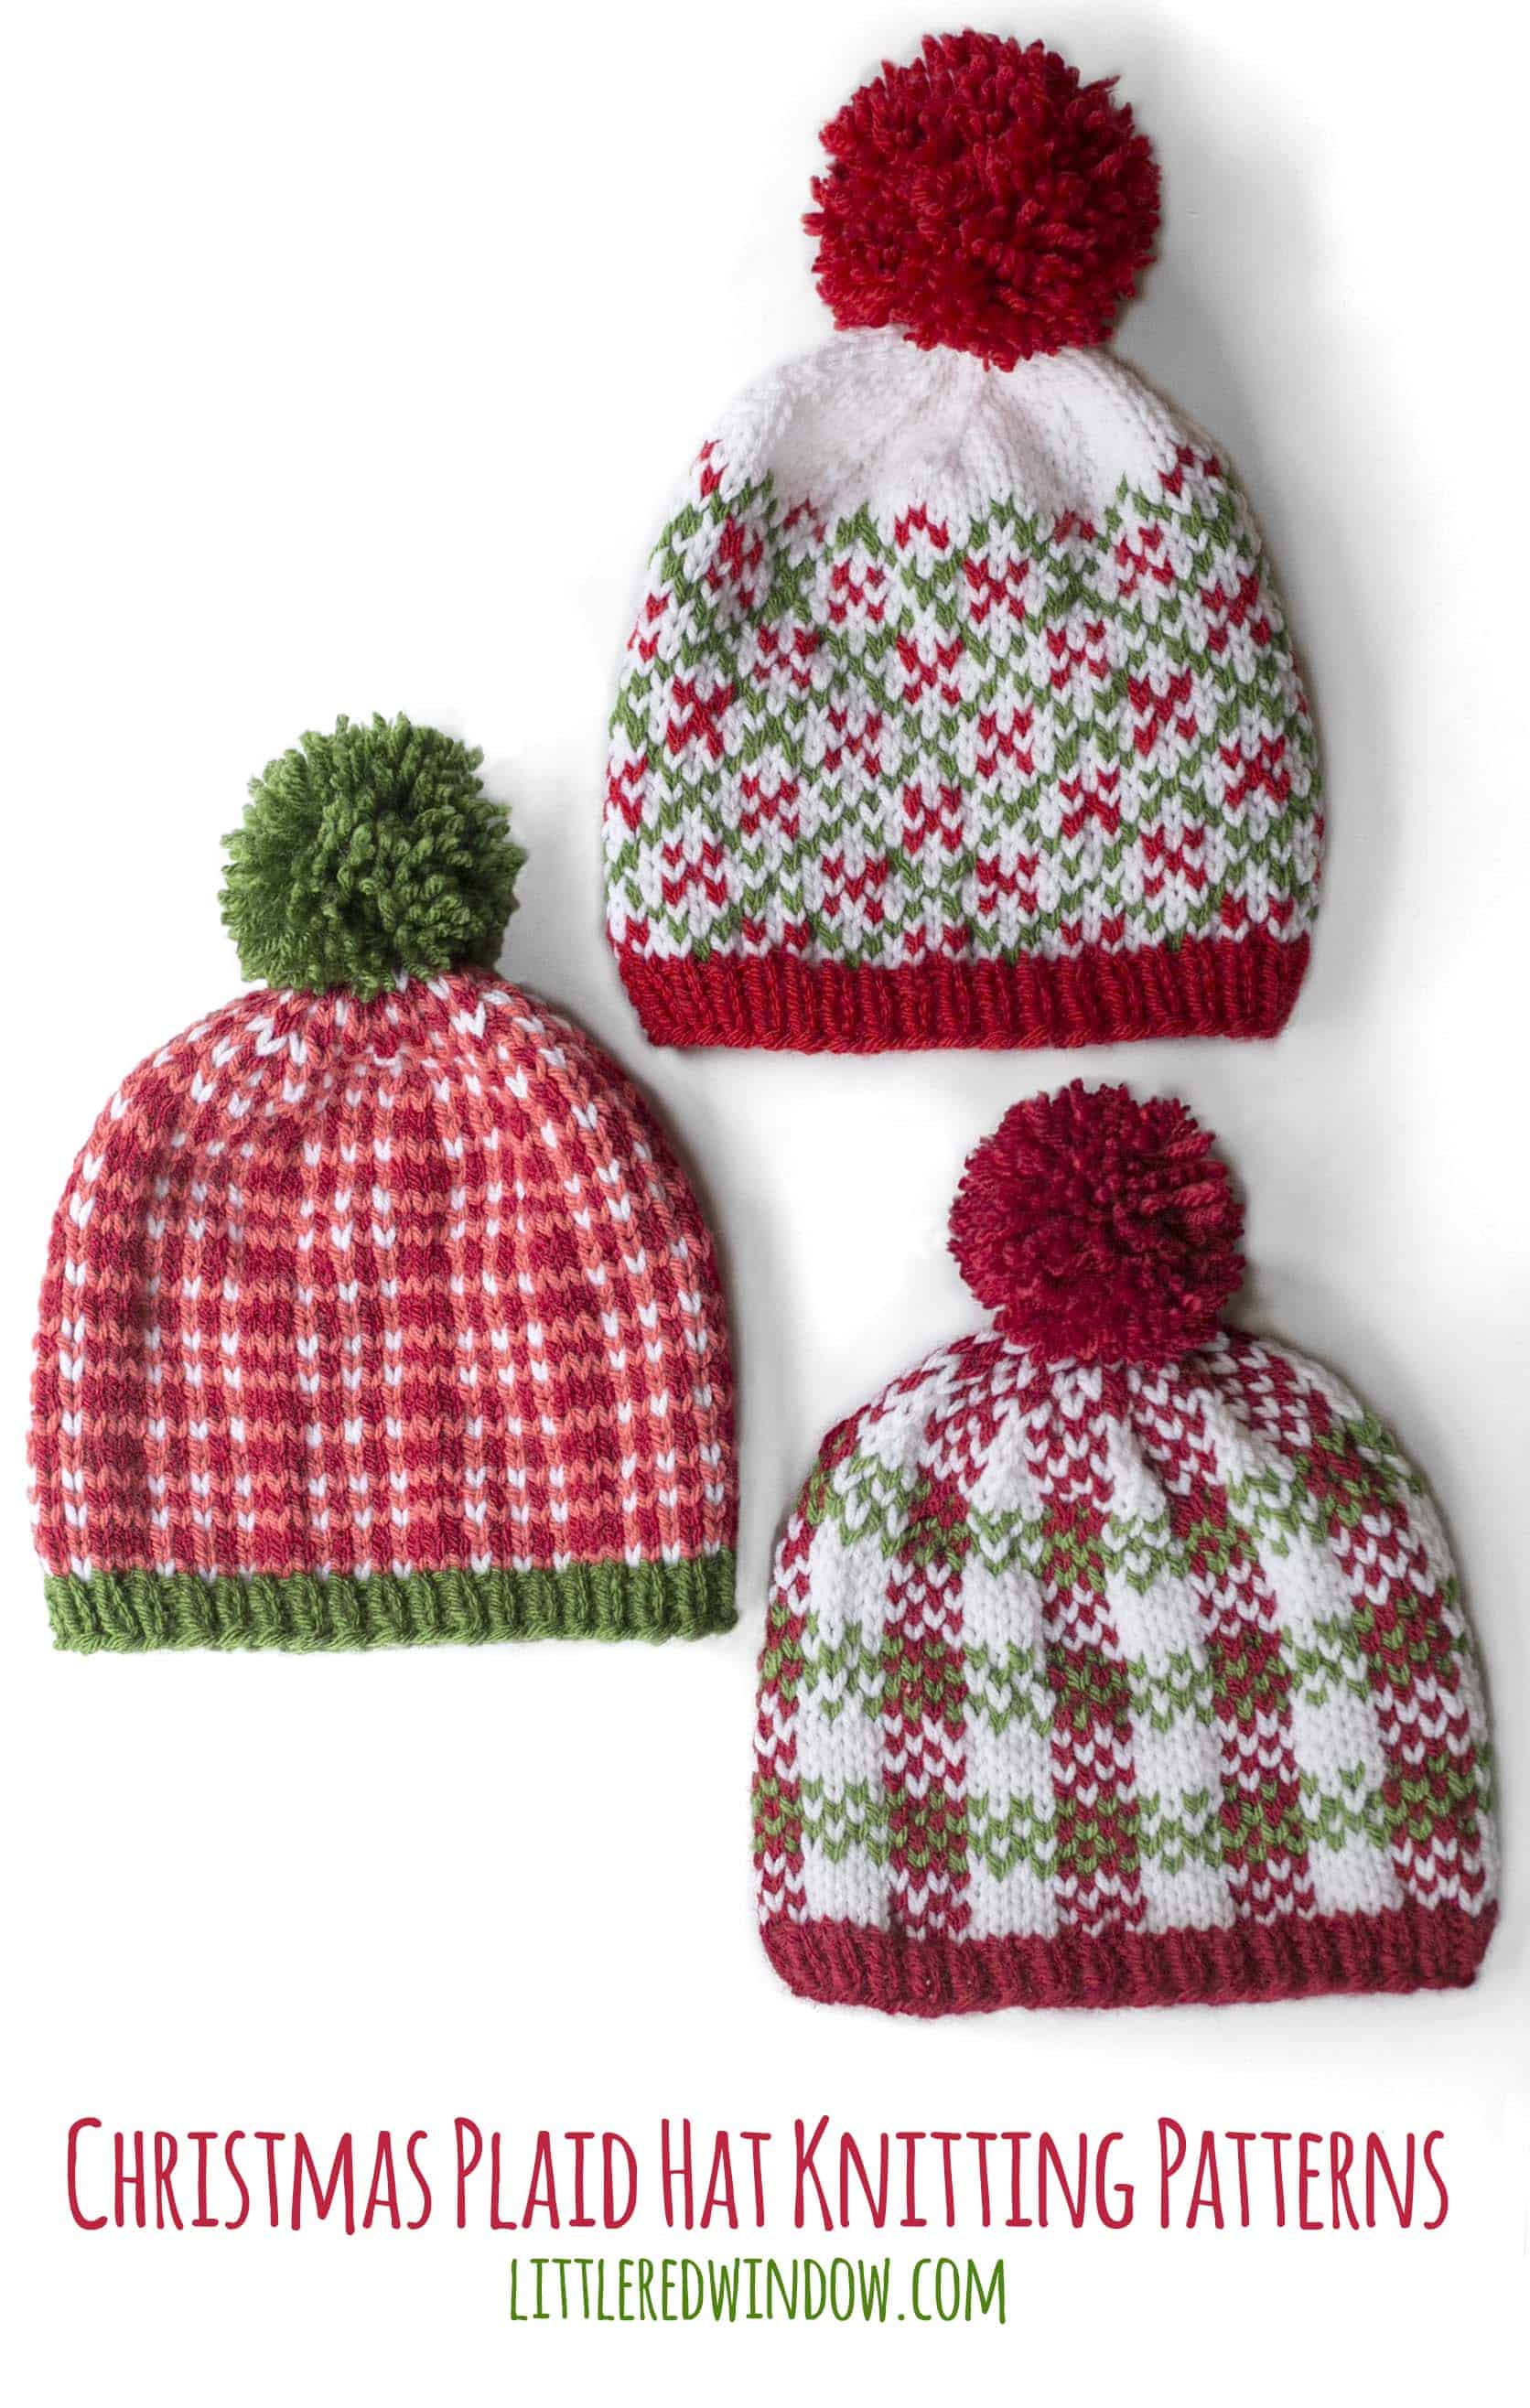 Christmas Plaid Hat Knitting Pattern Bundle, this cute trio of baby hat patterns is perfect for your holiday knitting!